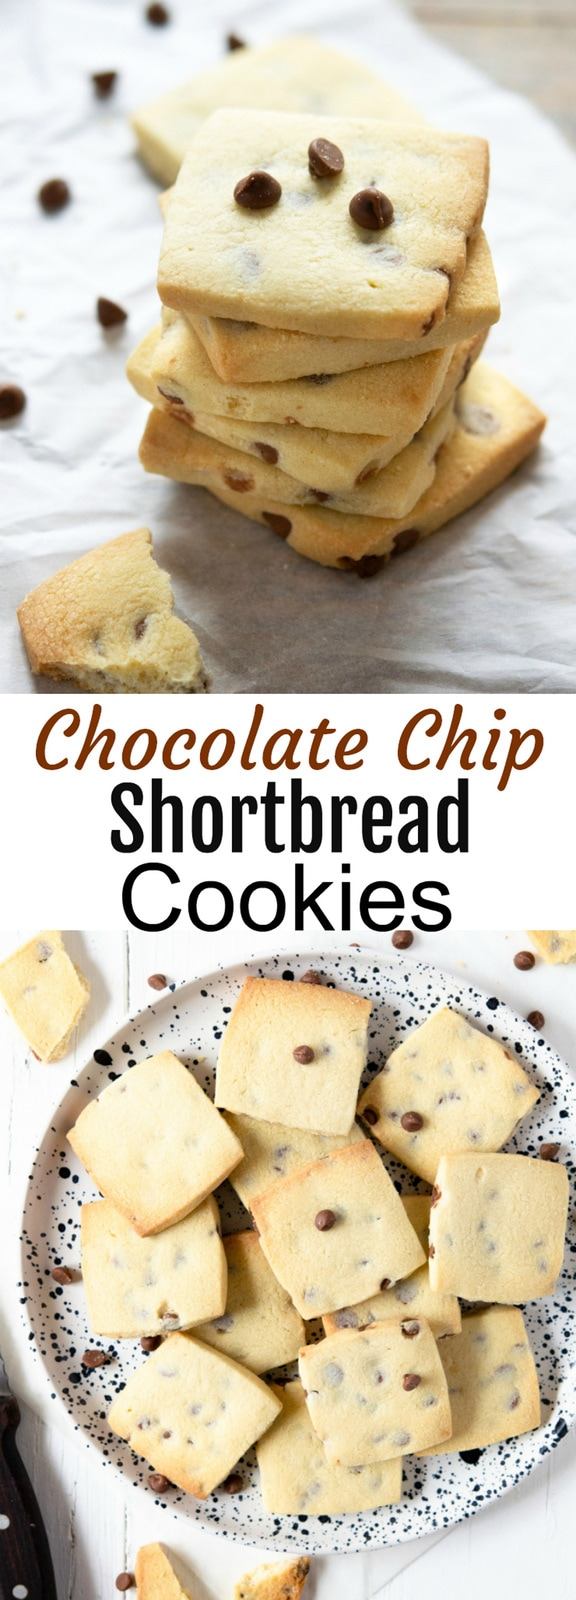 Chocolate Chip Shortbread Cookies. Crunchy, buttery, melt-in-your-mouth cookies. These cookies keep well and are perfect for gifting or with an afternoon cup of coffee or tea.